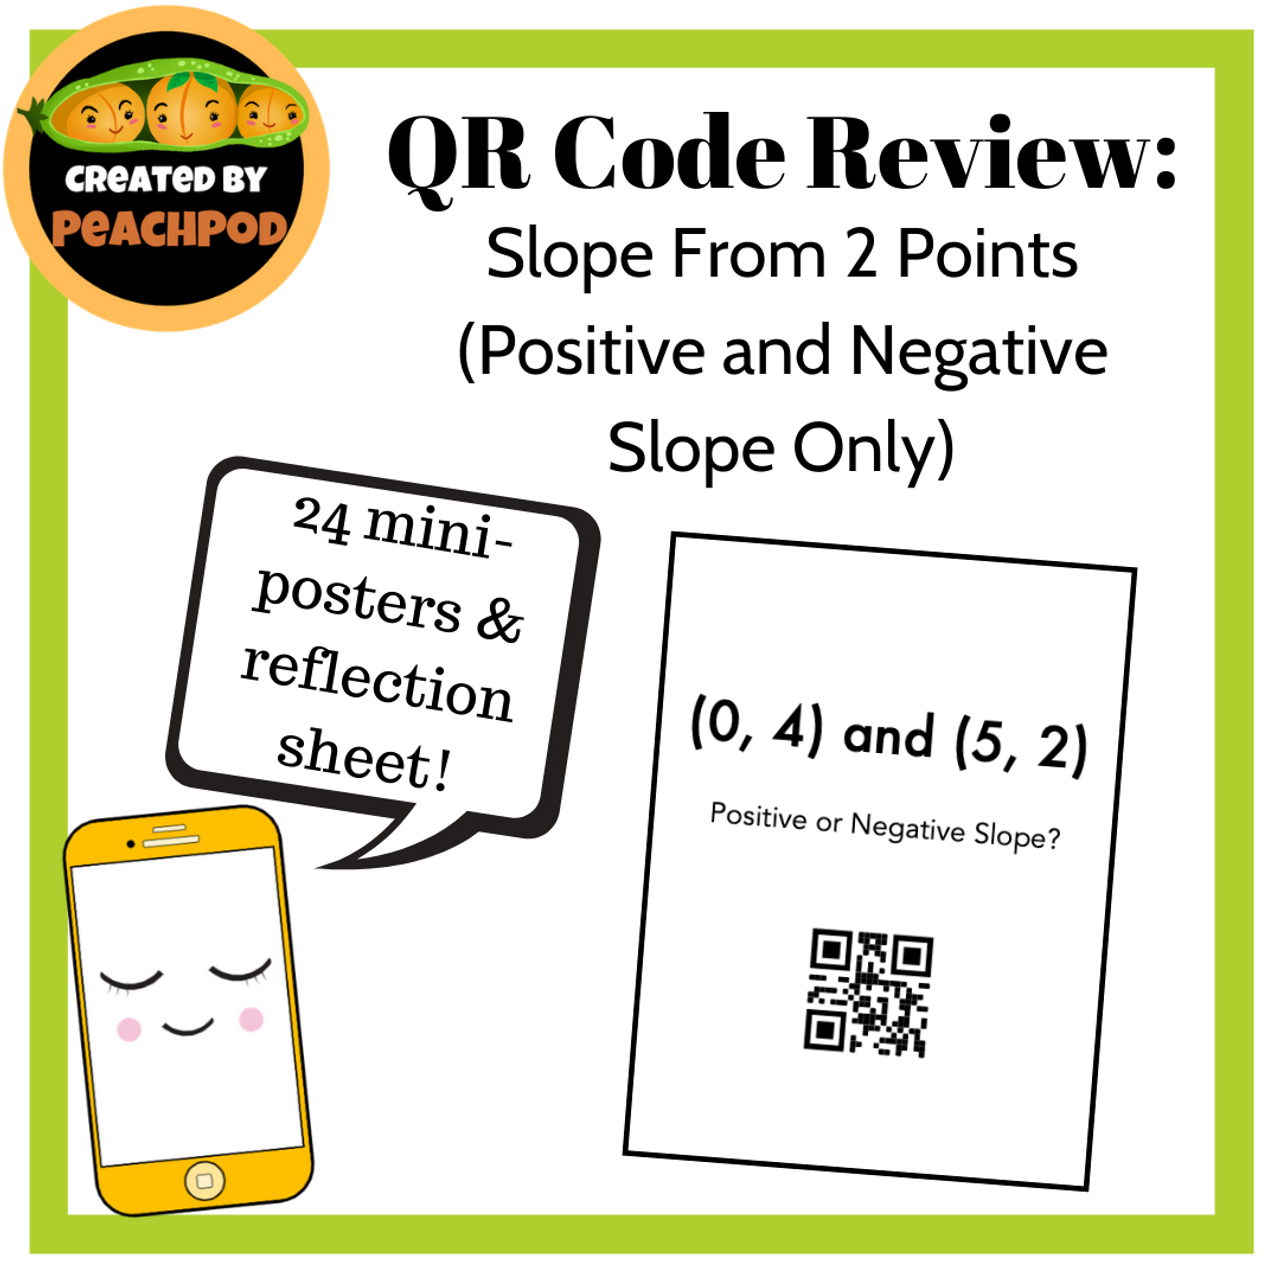 QR Code Review: Slope From 2 Points (Positive & Negative Slope Only)